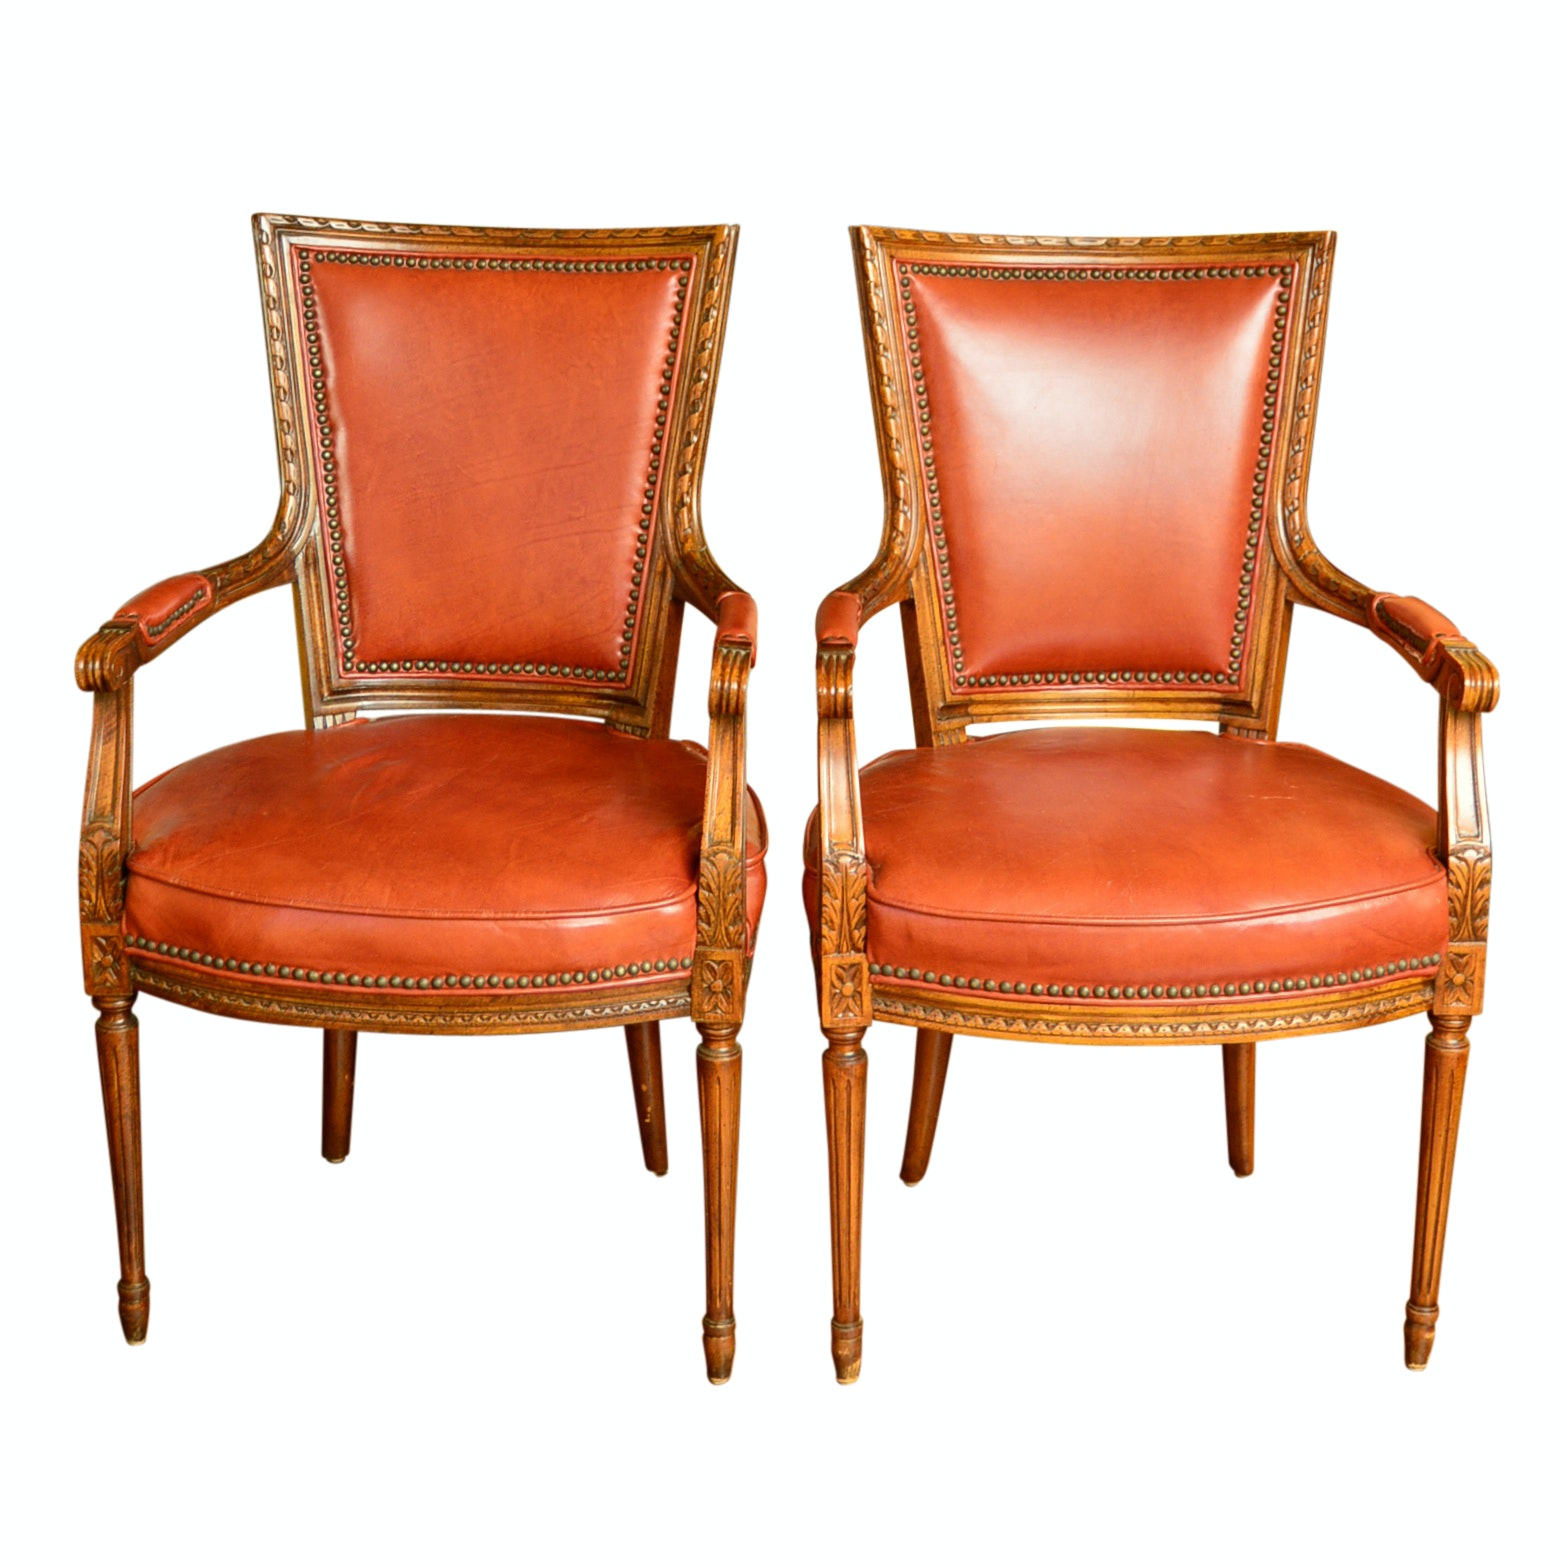 Pair of Vintage Louis XVI Style Leather-Upholstered Armchairs